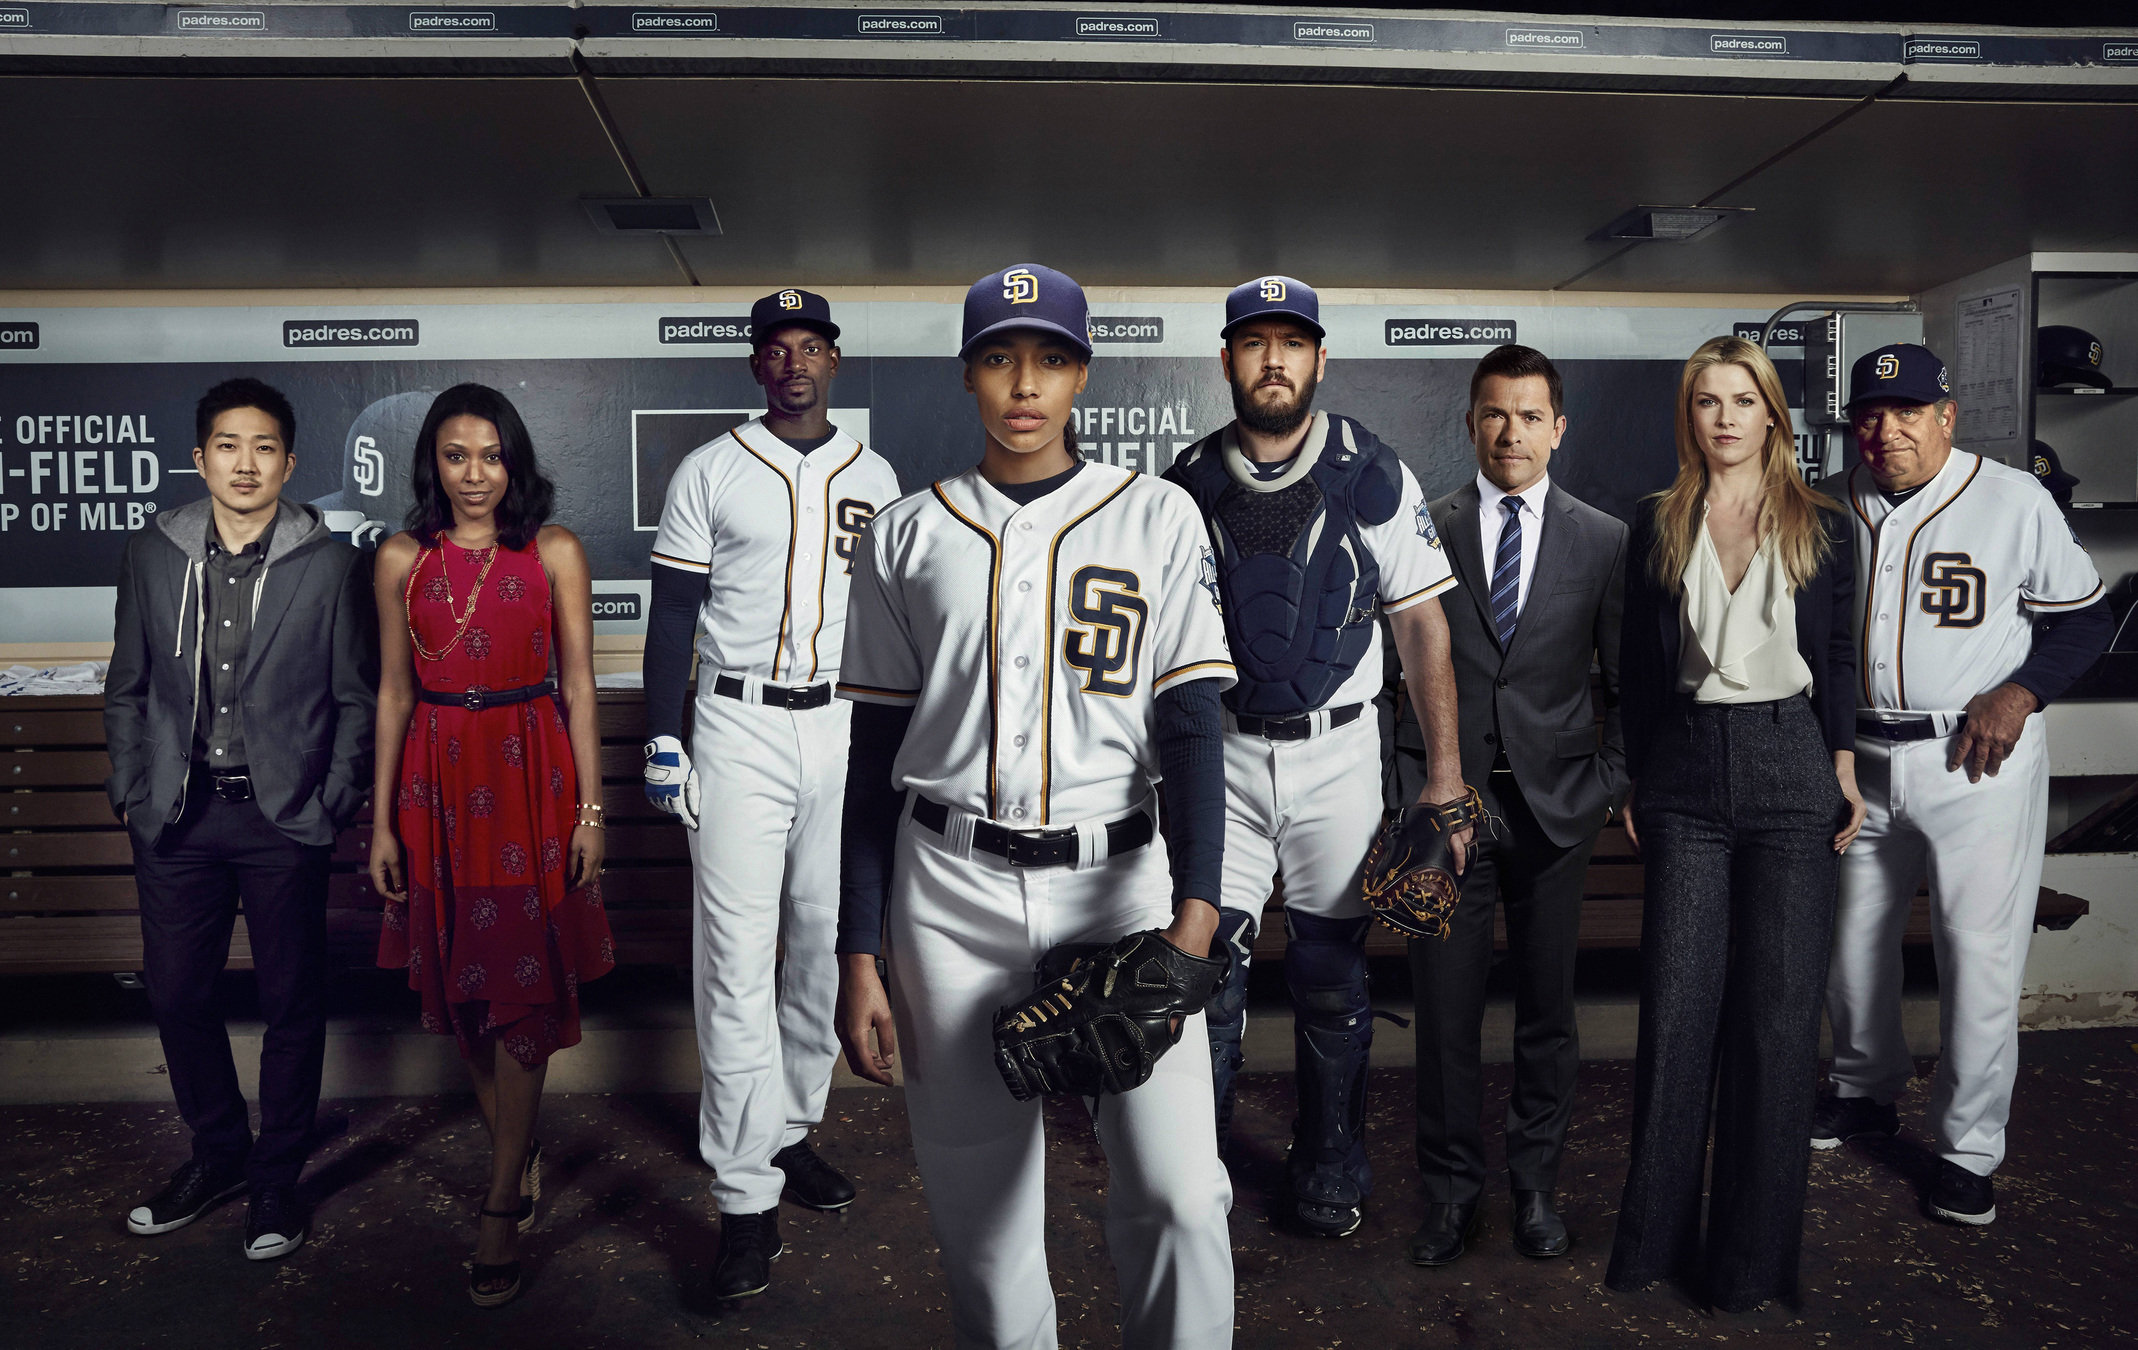 Mark-Paul Gosselaar, Ali Larter, Mark Consuelos, Dan Lauria, Mo McRae, Tim Jo, Meagan Holder, and Kylie Bunbury in Pitch (2016)